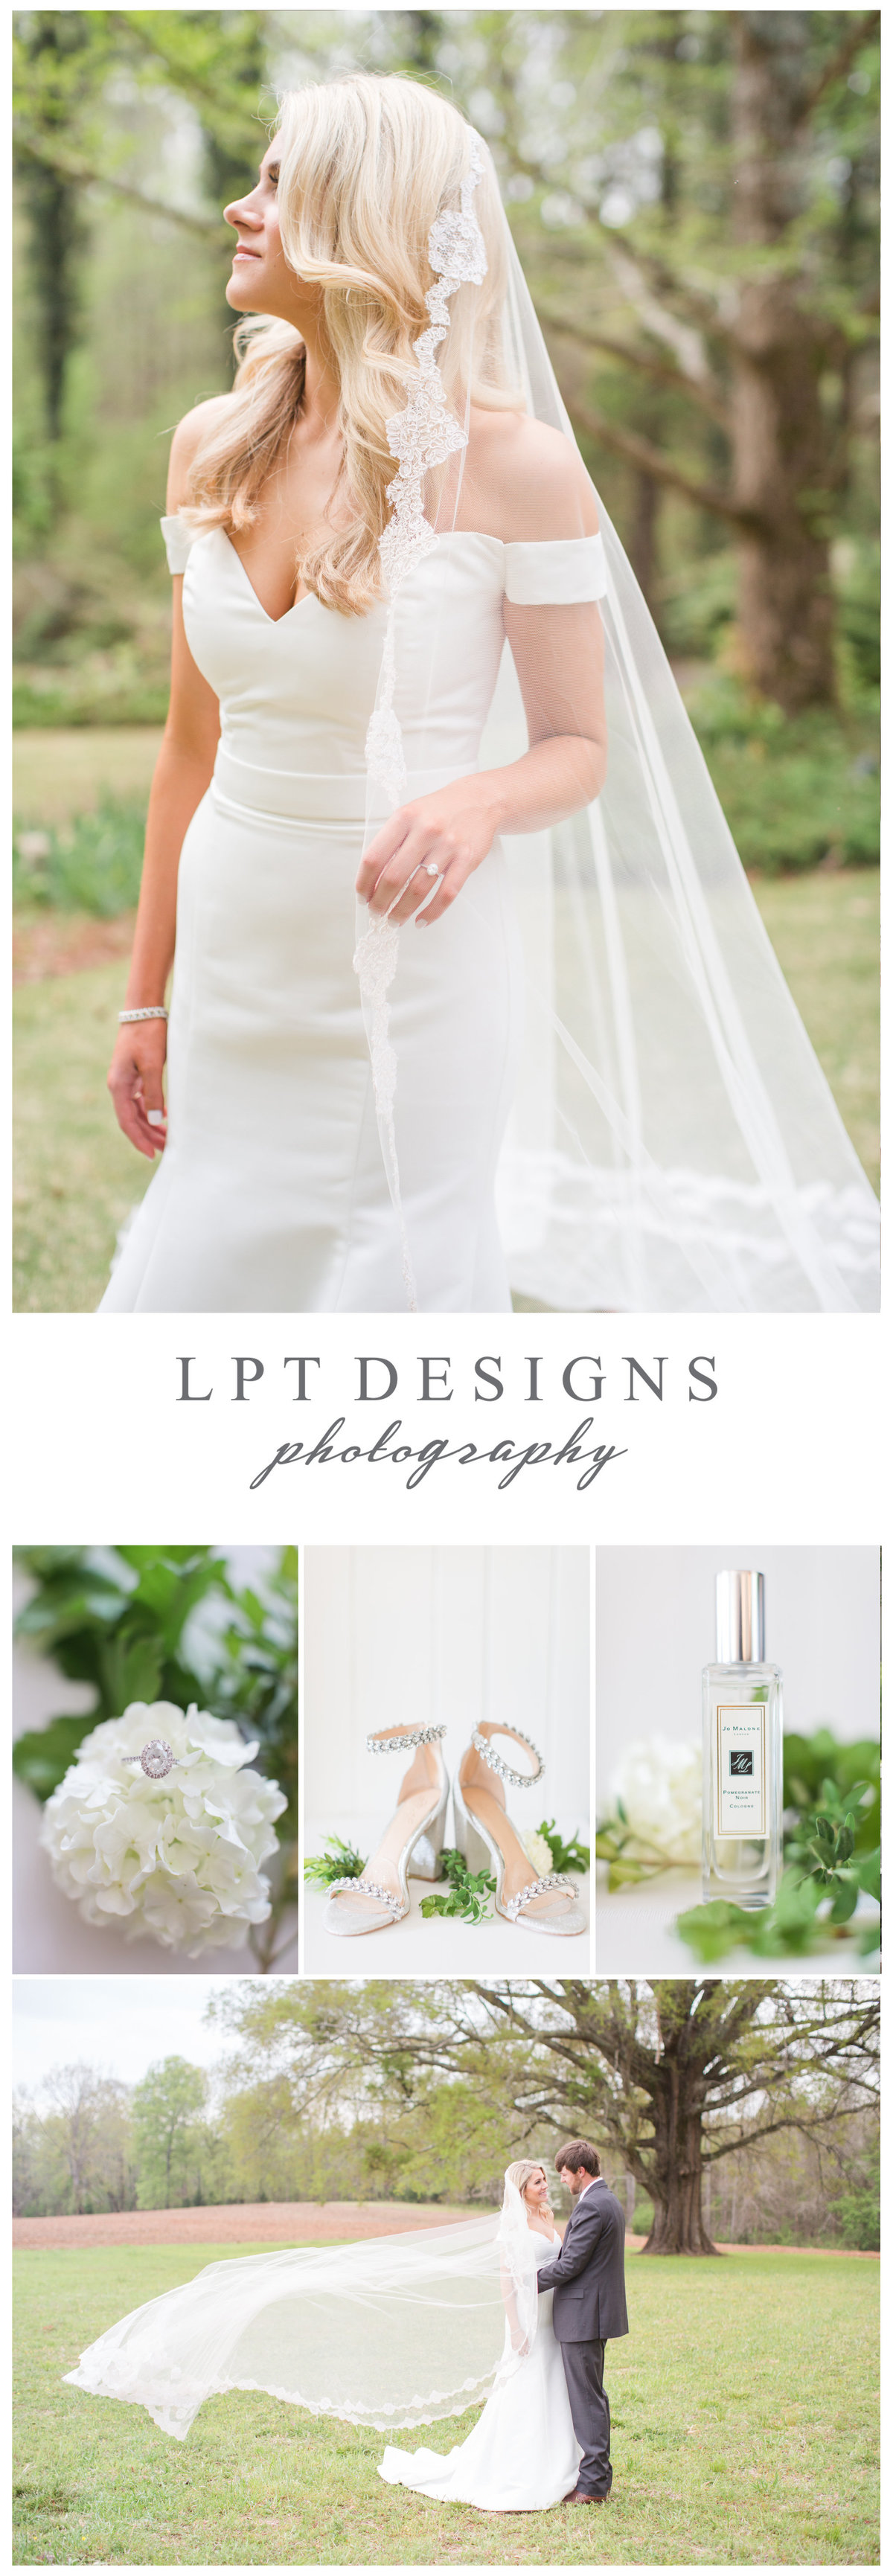 lpt_designs_photography_lydia_thrift_gadsden_alabama_fine_art_wedding_photographer_gj_1